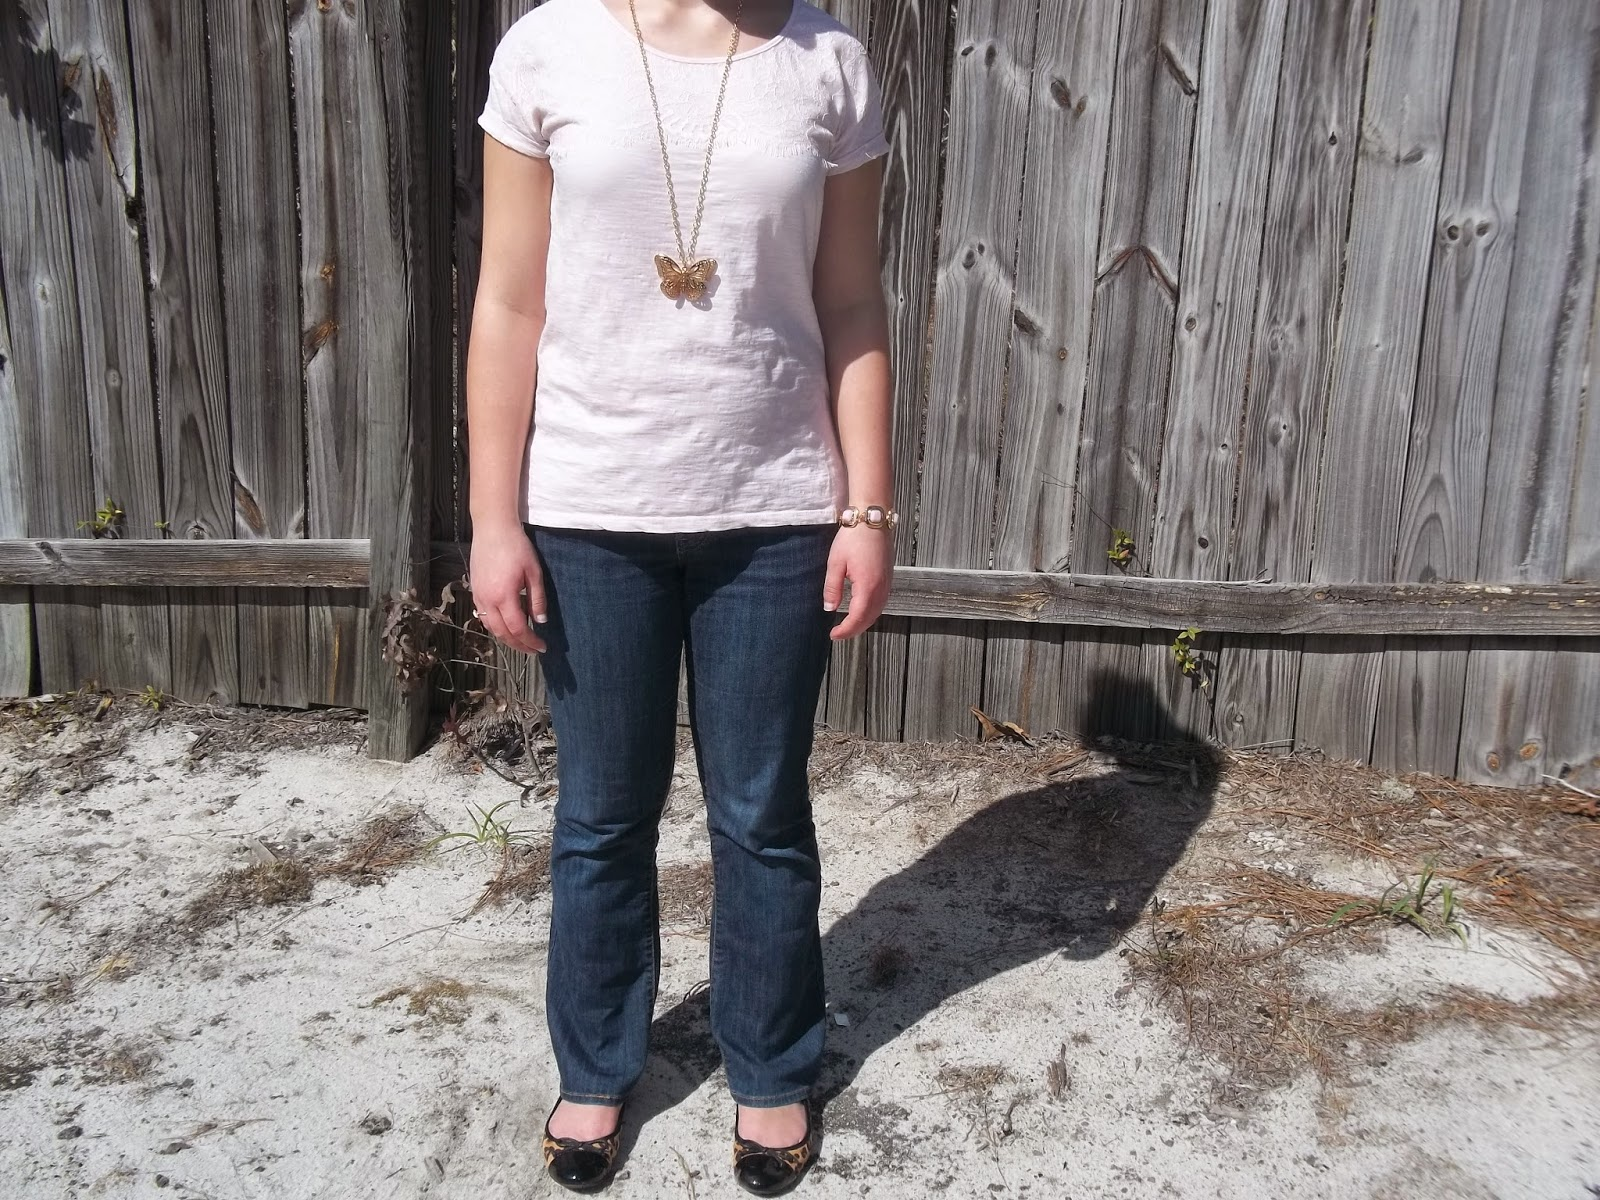 Mix It Monday- Pink Lace Tee. Pink lace tee, bootcut jeans, leopard flats, gold jewelry, tan cardigan. http://mybowsandclothes.blogspot.com. #outfit #lace #MixItMon #BowsandClothes